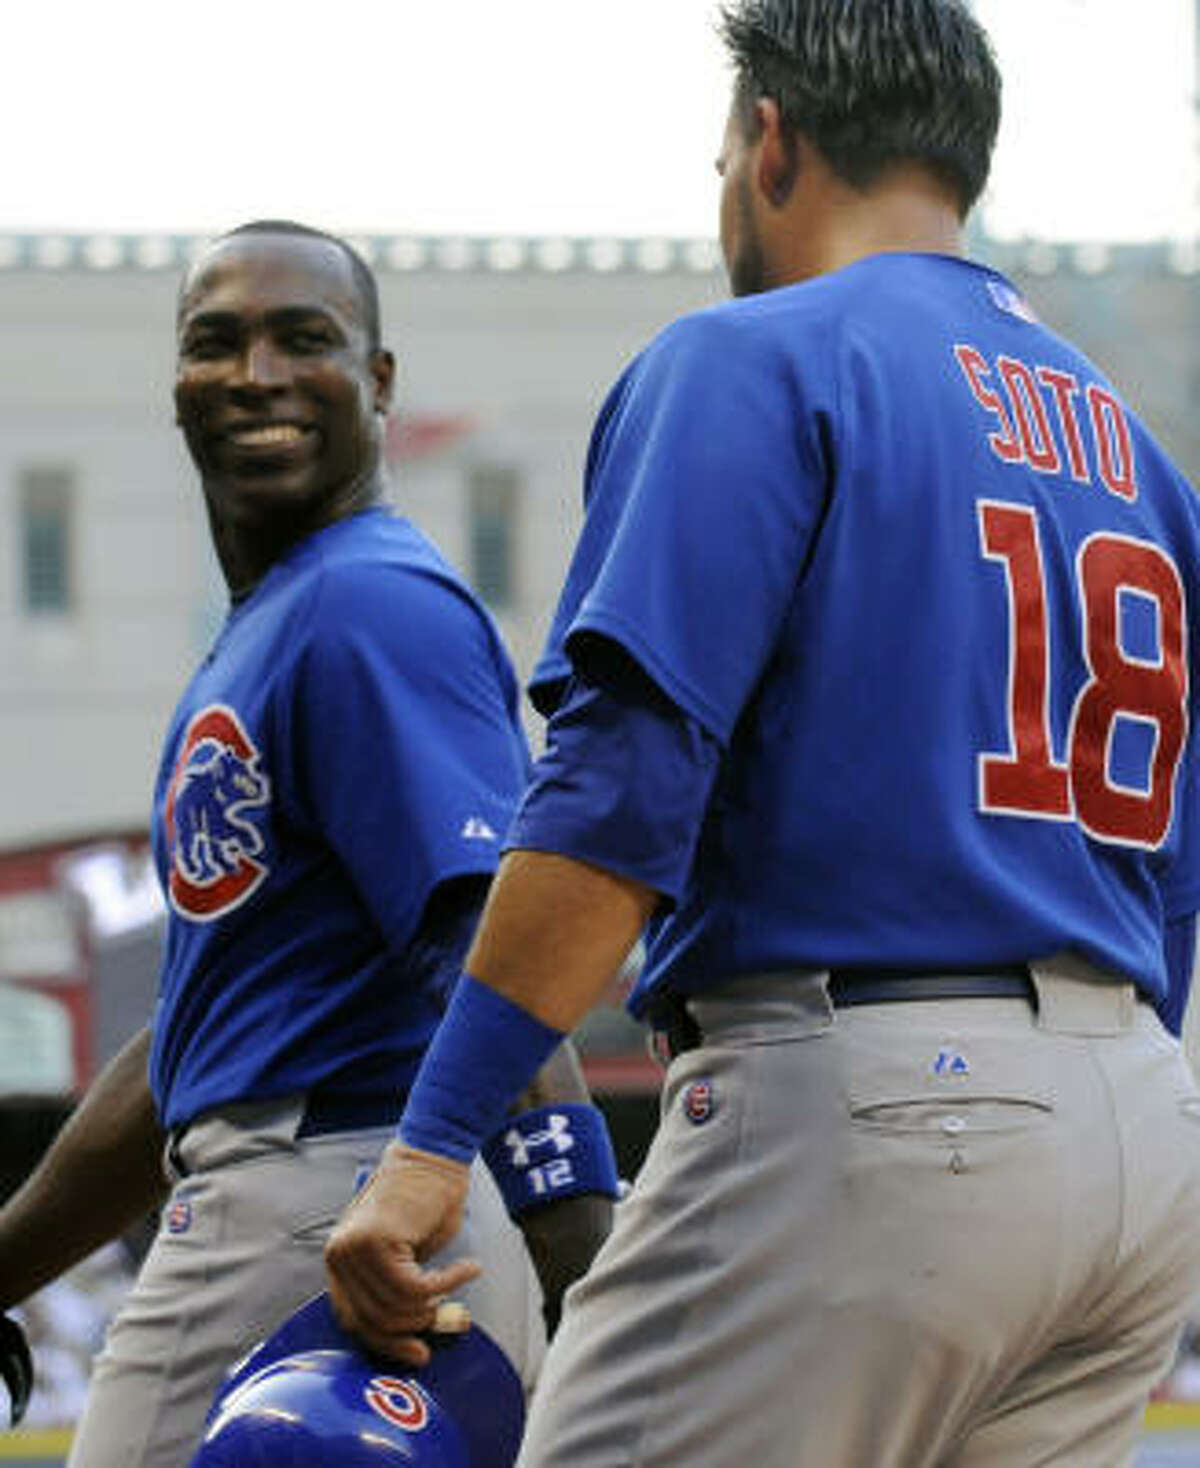 Chicago Cubs' Alfonso Soriano, left, smiles at teammate Geovany Soto as they walk back to the dugout after scoring on a Reed Johnson three-run triple in the first inning.